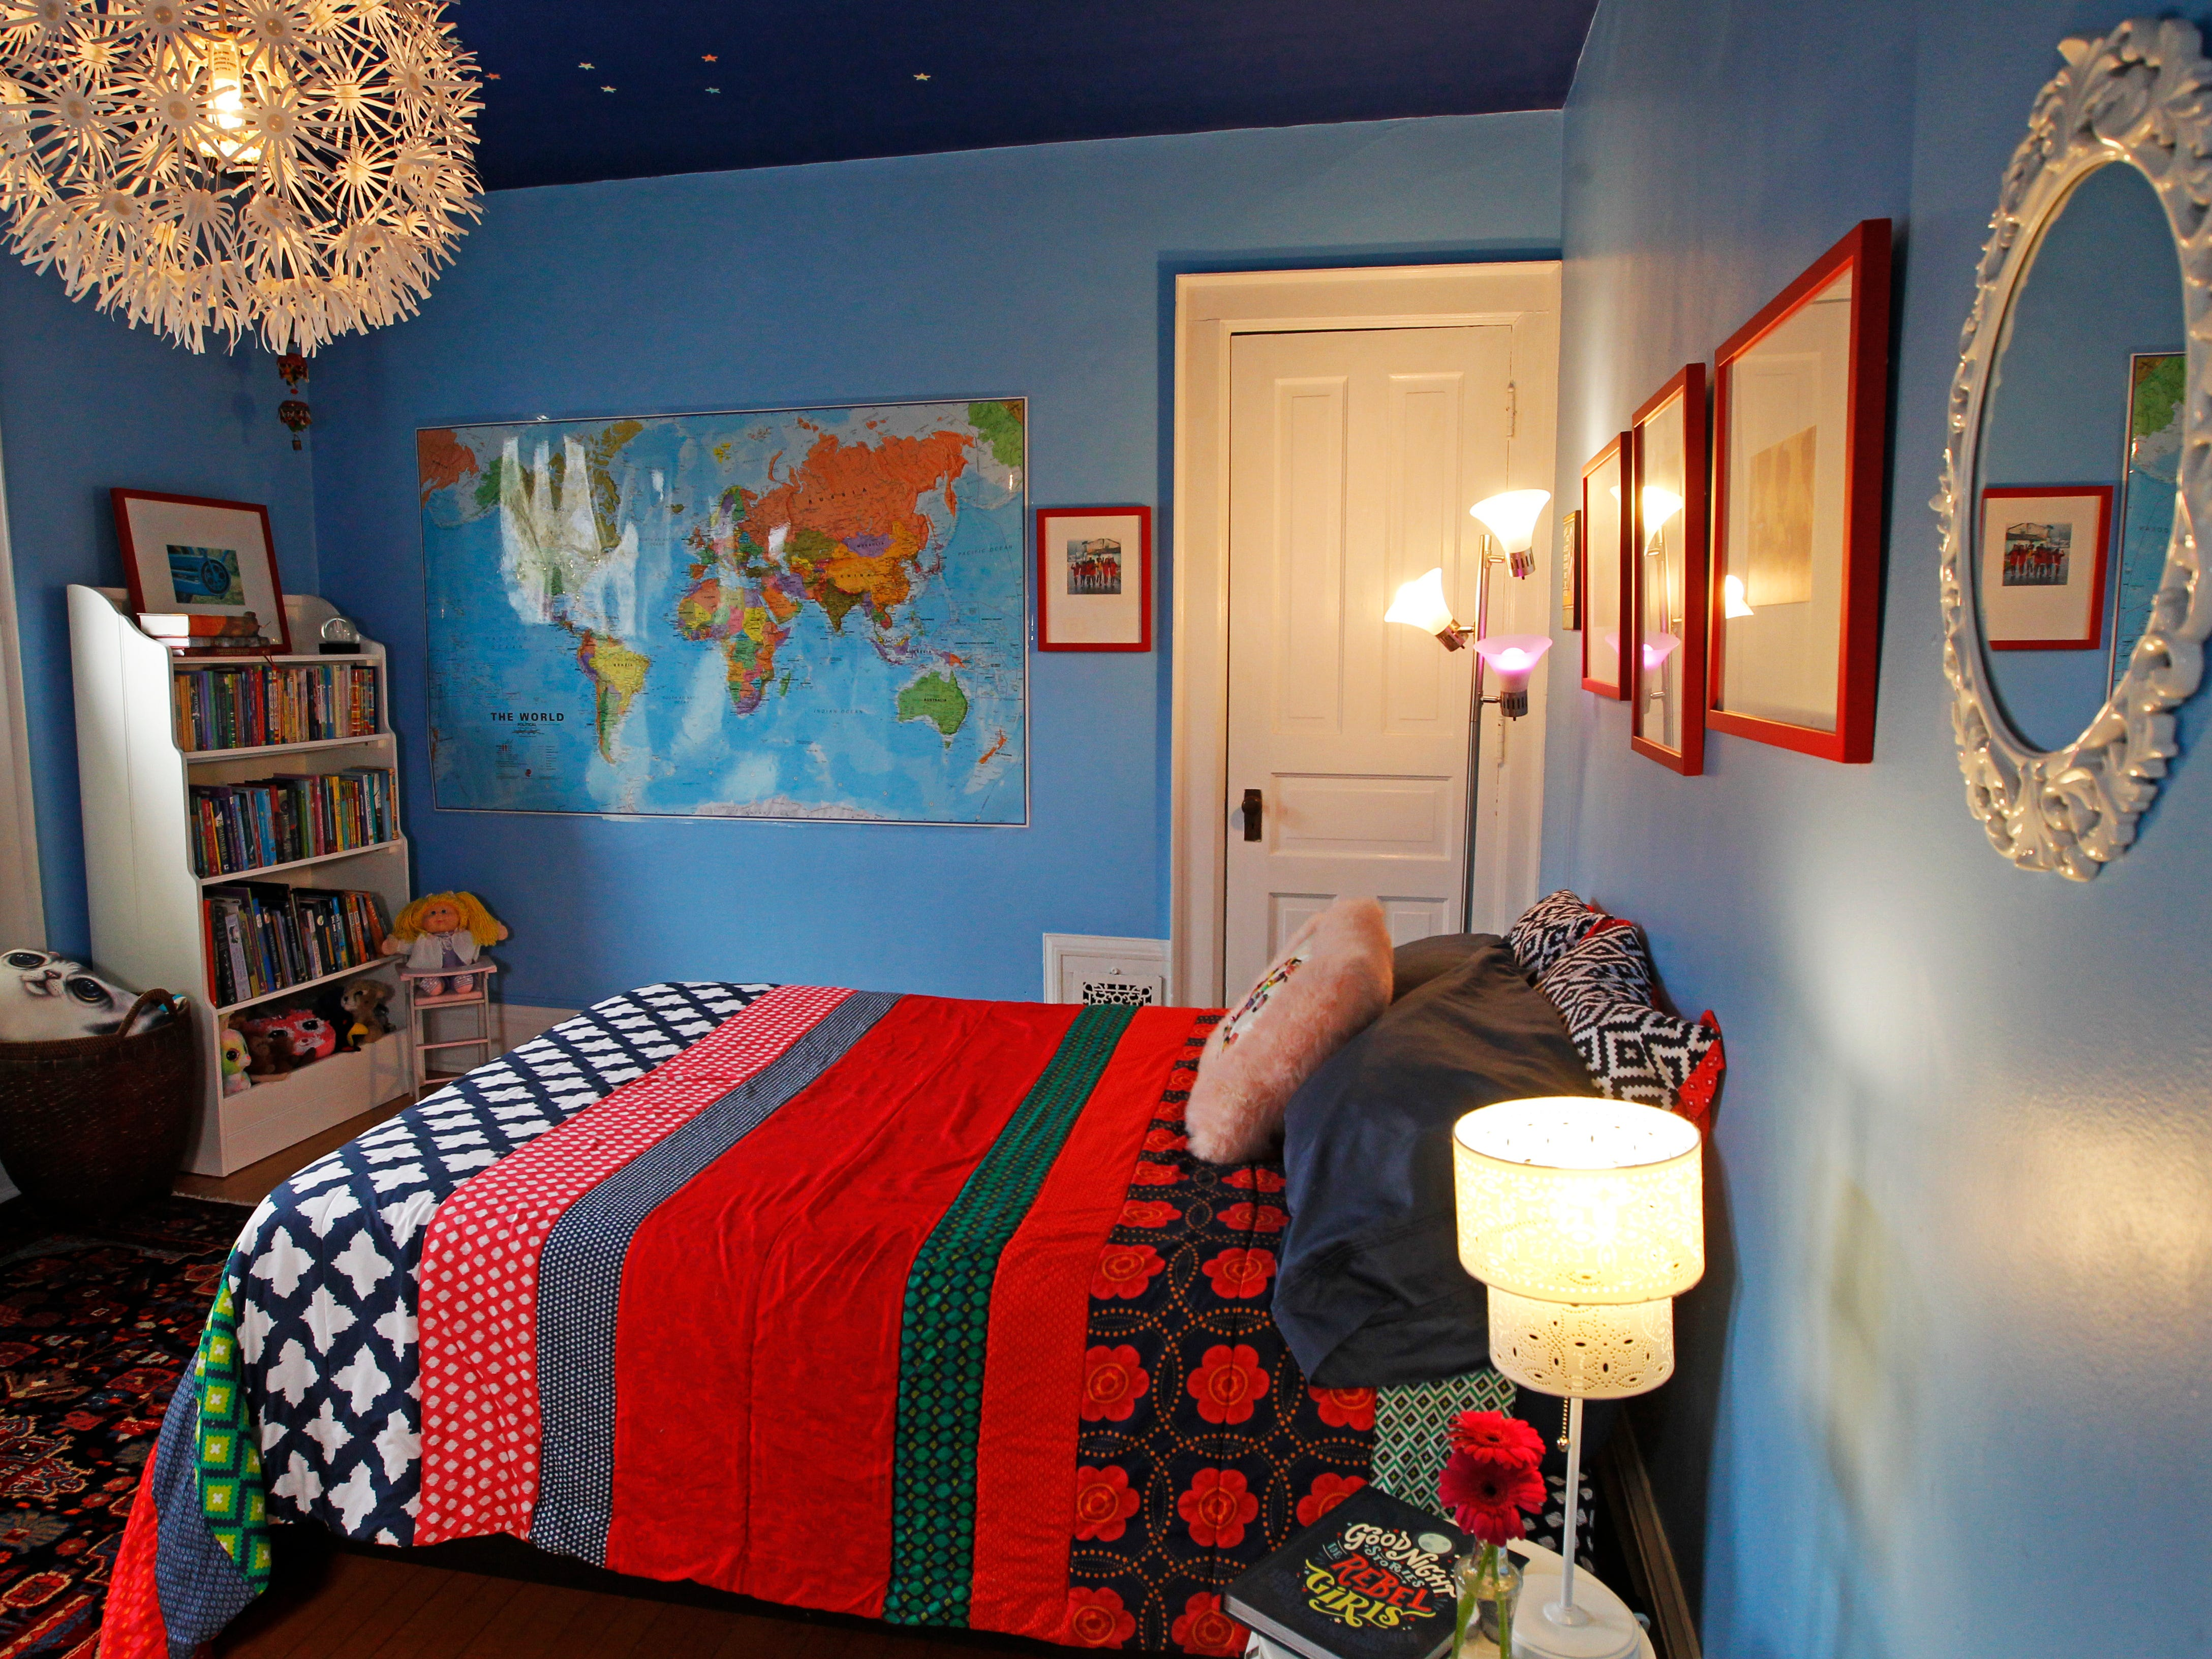 Blue colored walls, a decorative light and a mirror brighten the bedroom of 9-year-old Elena.